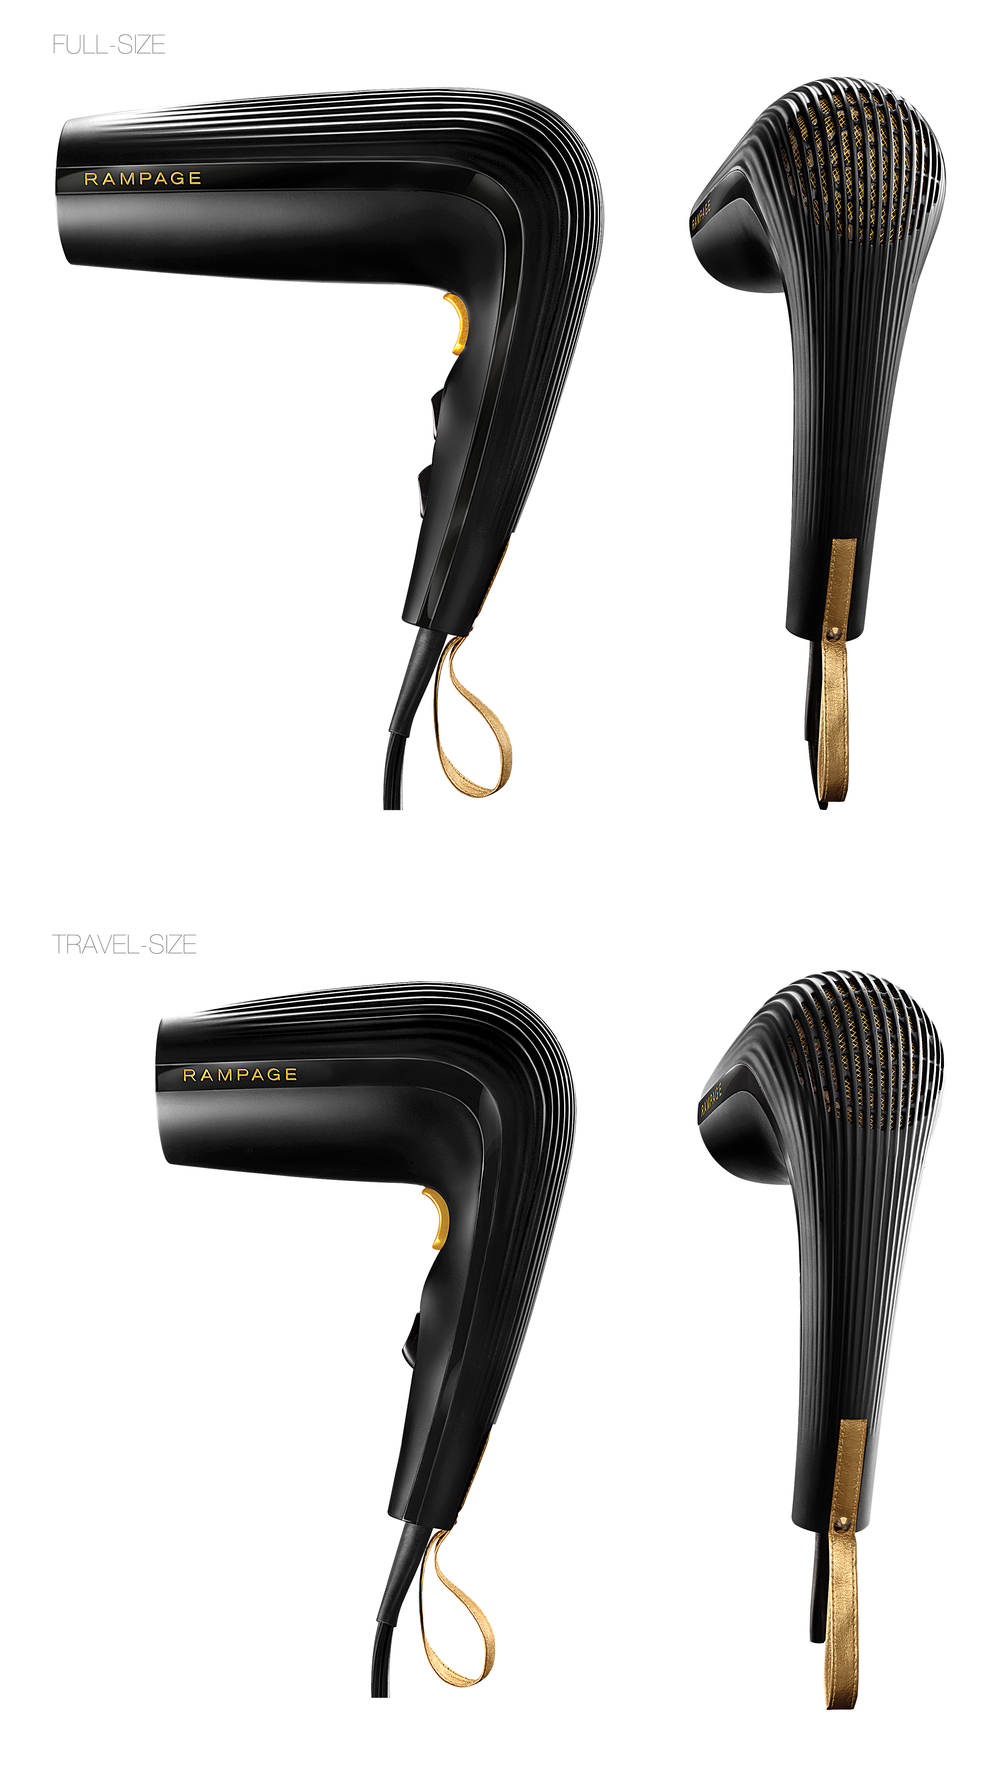 Rampage Hair Dryer Designs